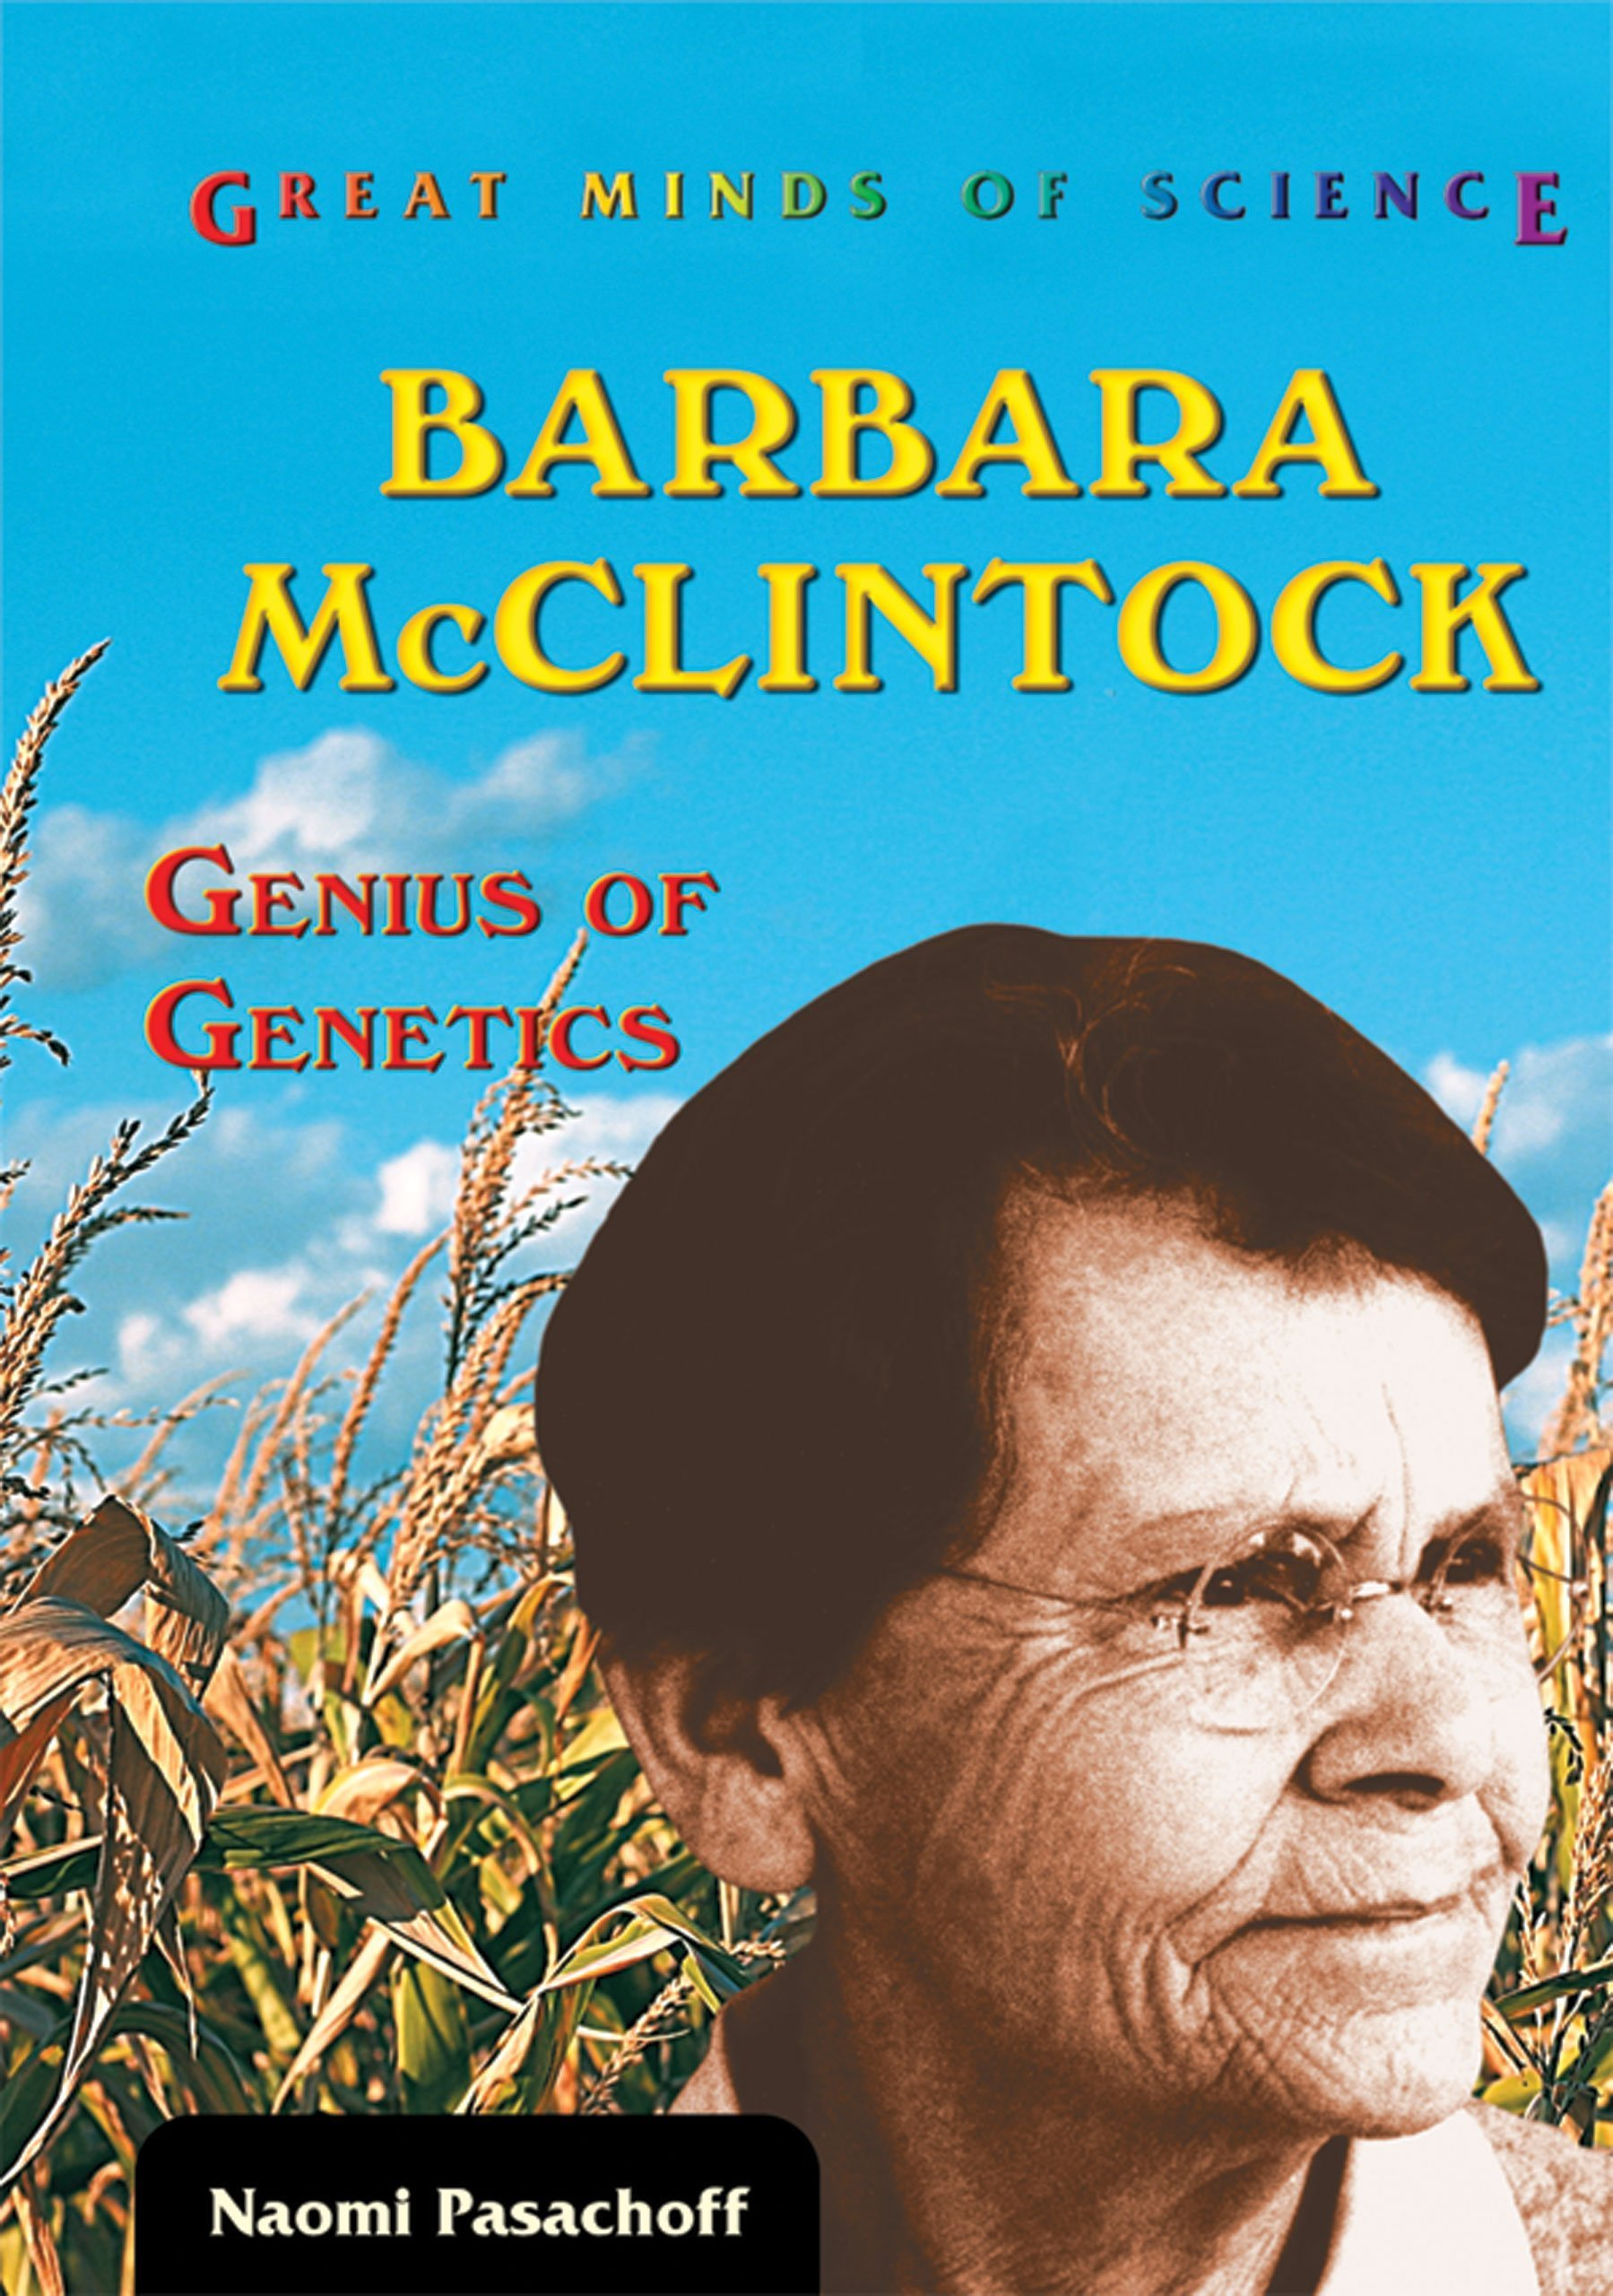 Barbara McClintock: Genius of Genetics (Great Minds of Science)